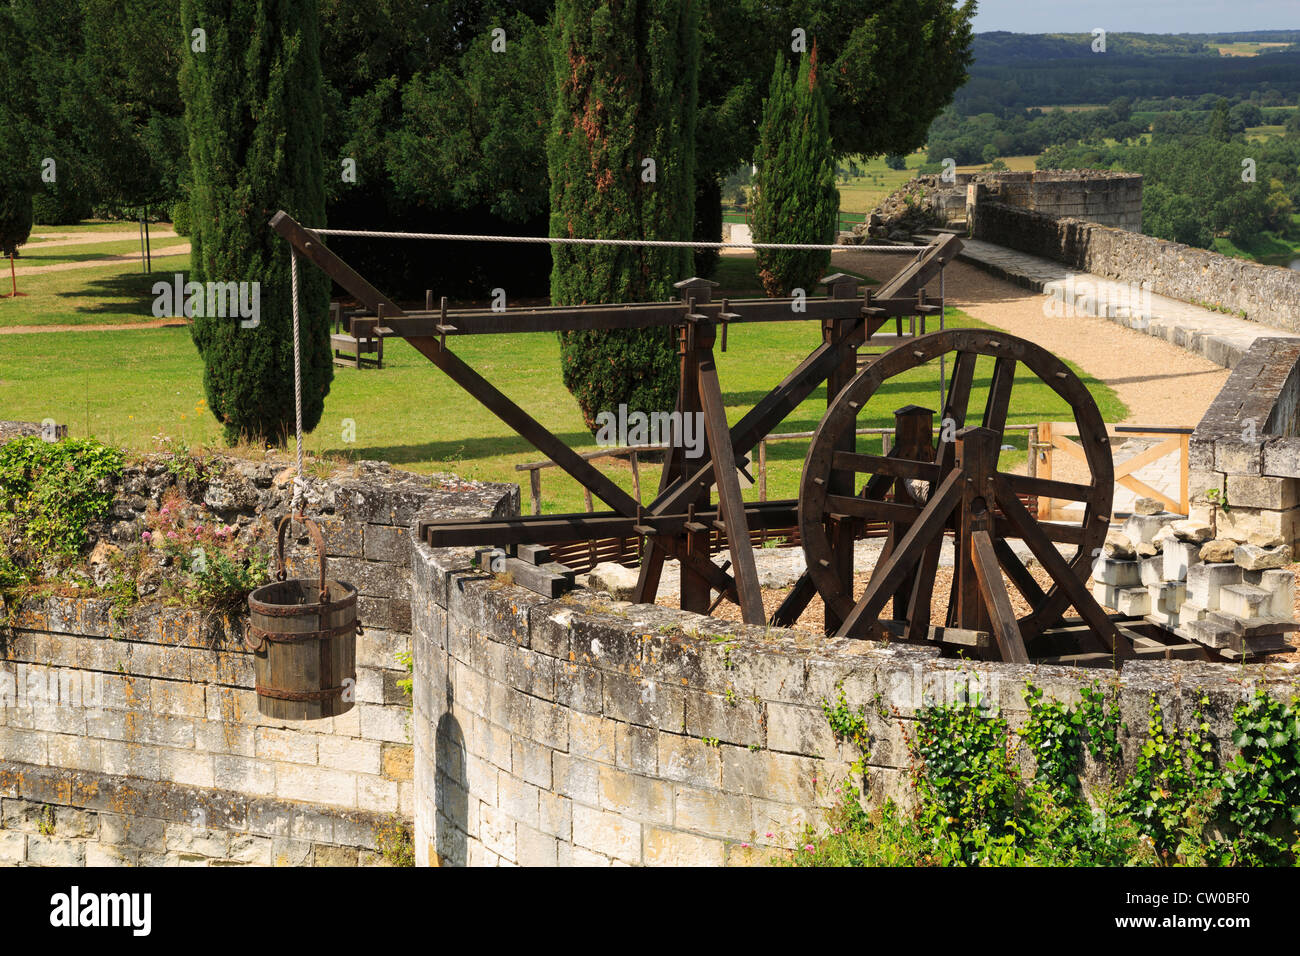 Lifting machine, Chinon, Loire Valley, France, Replica of a machine used to lift building materials in medieval - Stock Image